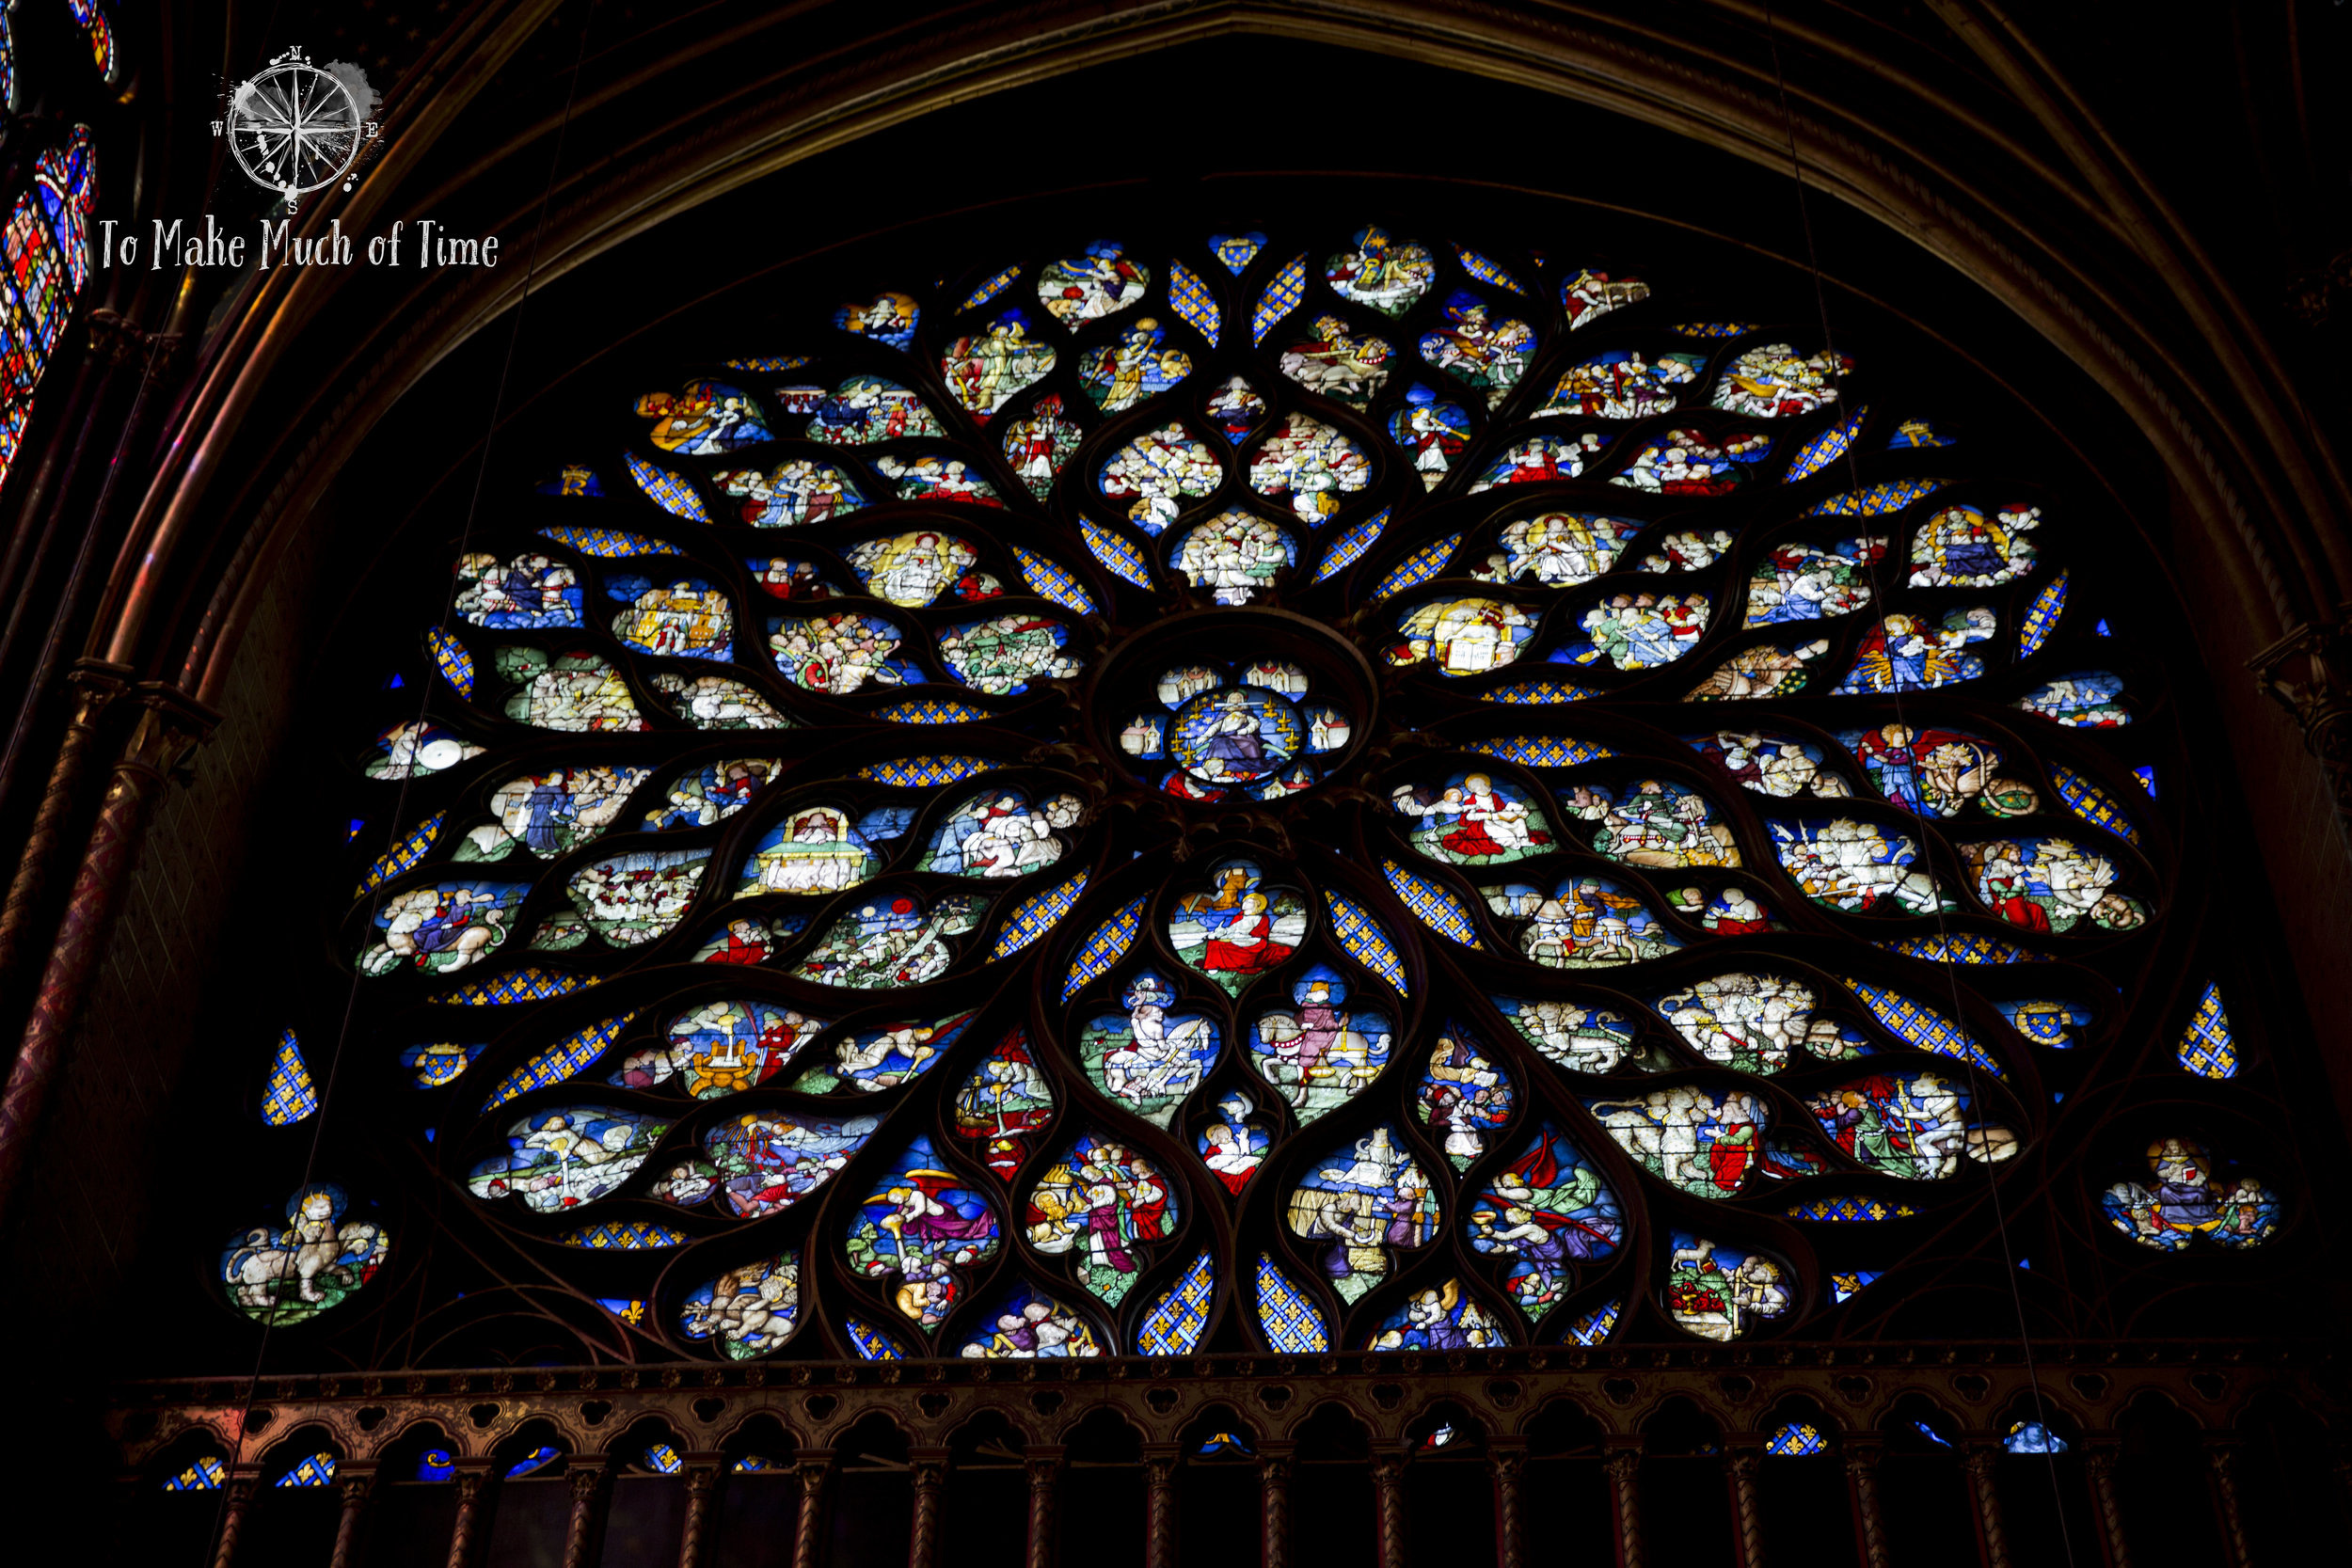 Looking for other beautiful places in Paris? - Check out Sainte-Chapelle for an amazing display of stained glass.